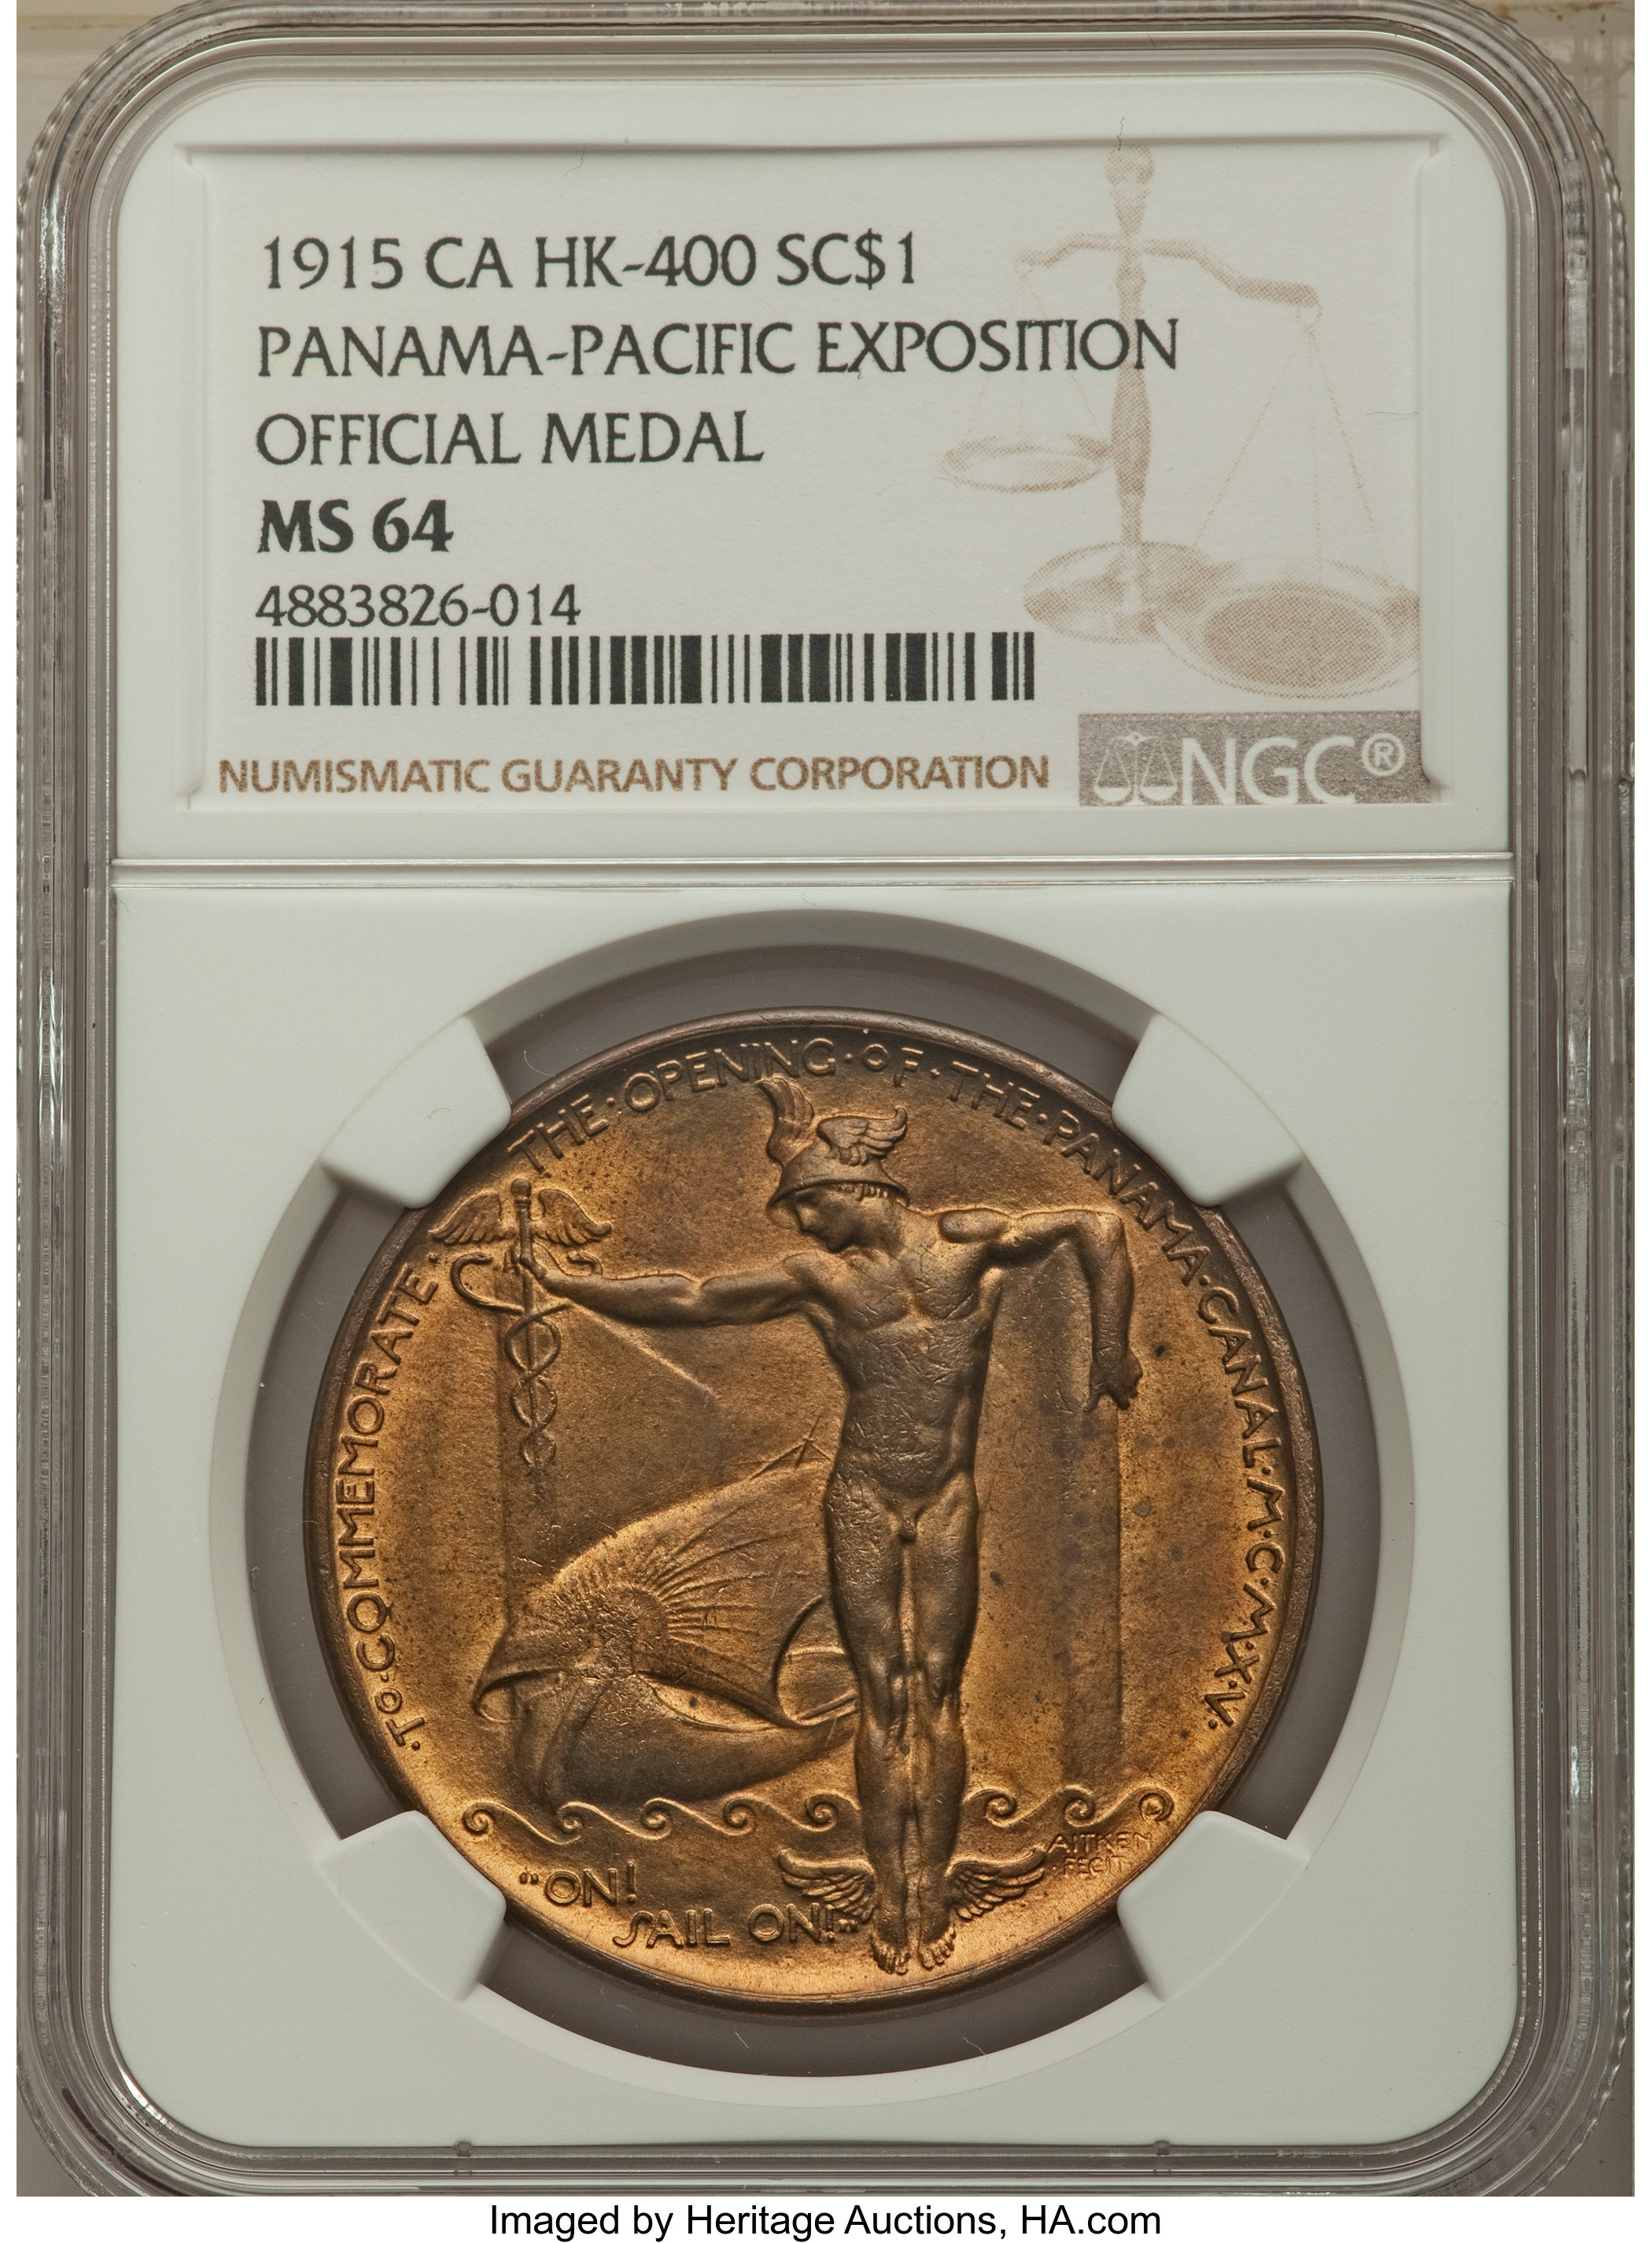 sample image for 1915 Pan-Pac Expo, Official, Bronze SC$1 MS BN (HK-400)